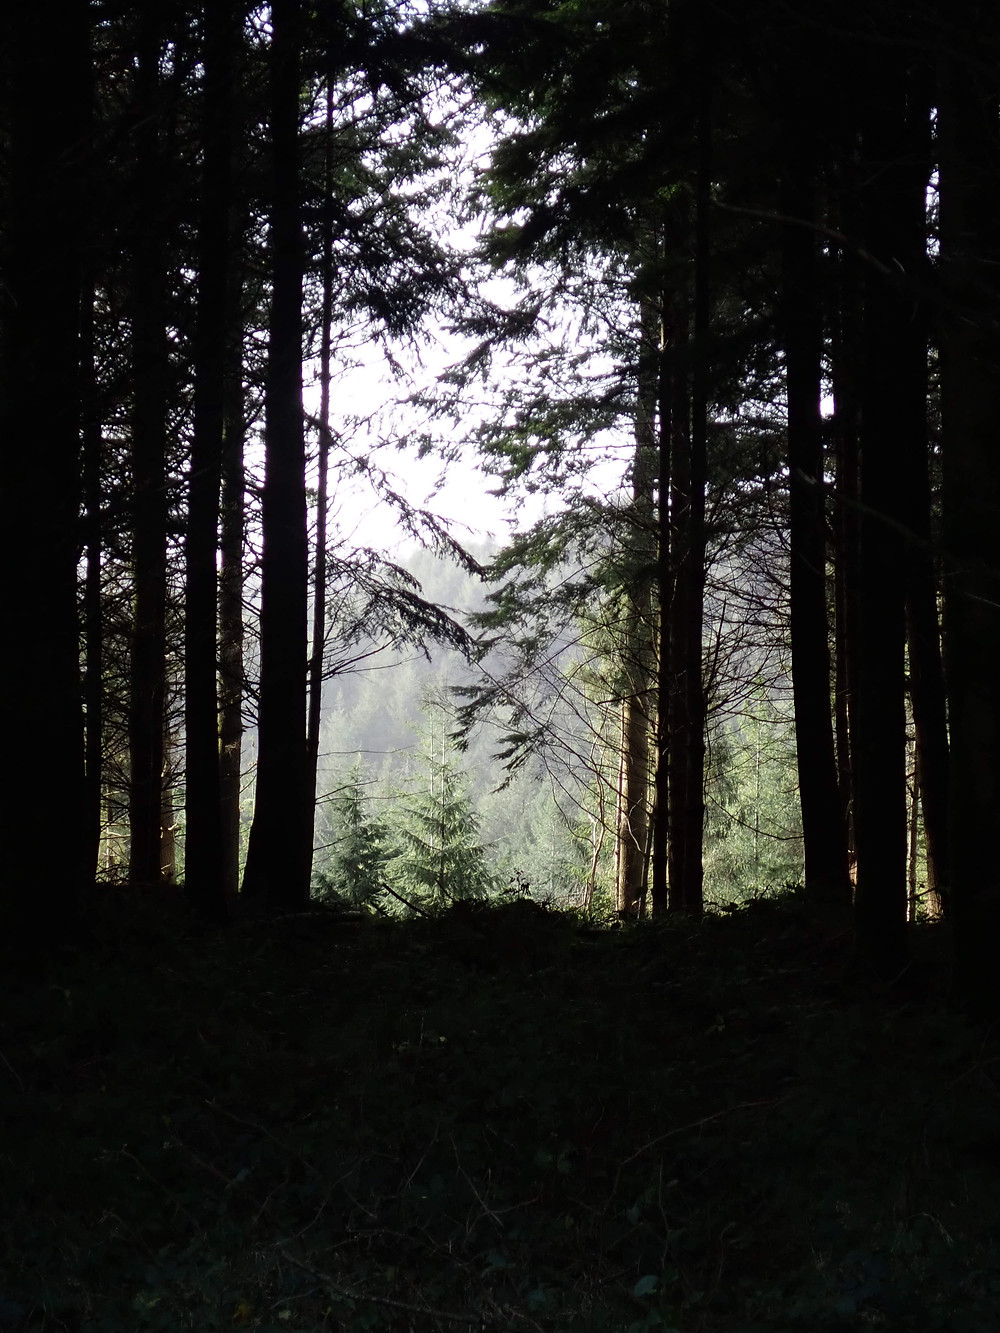 Large conifer trees and a view through them